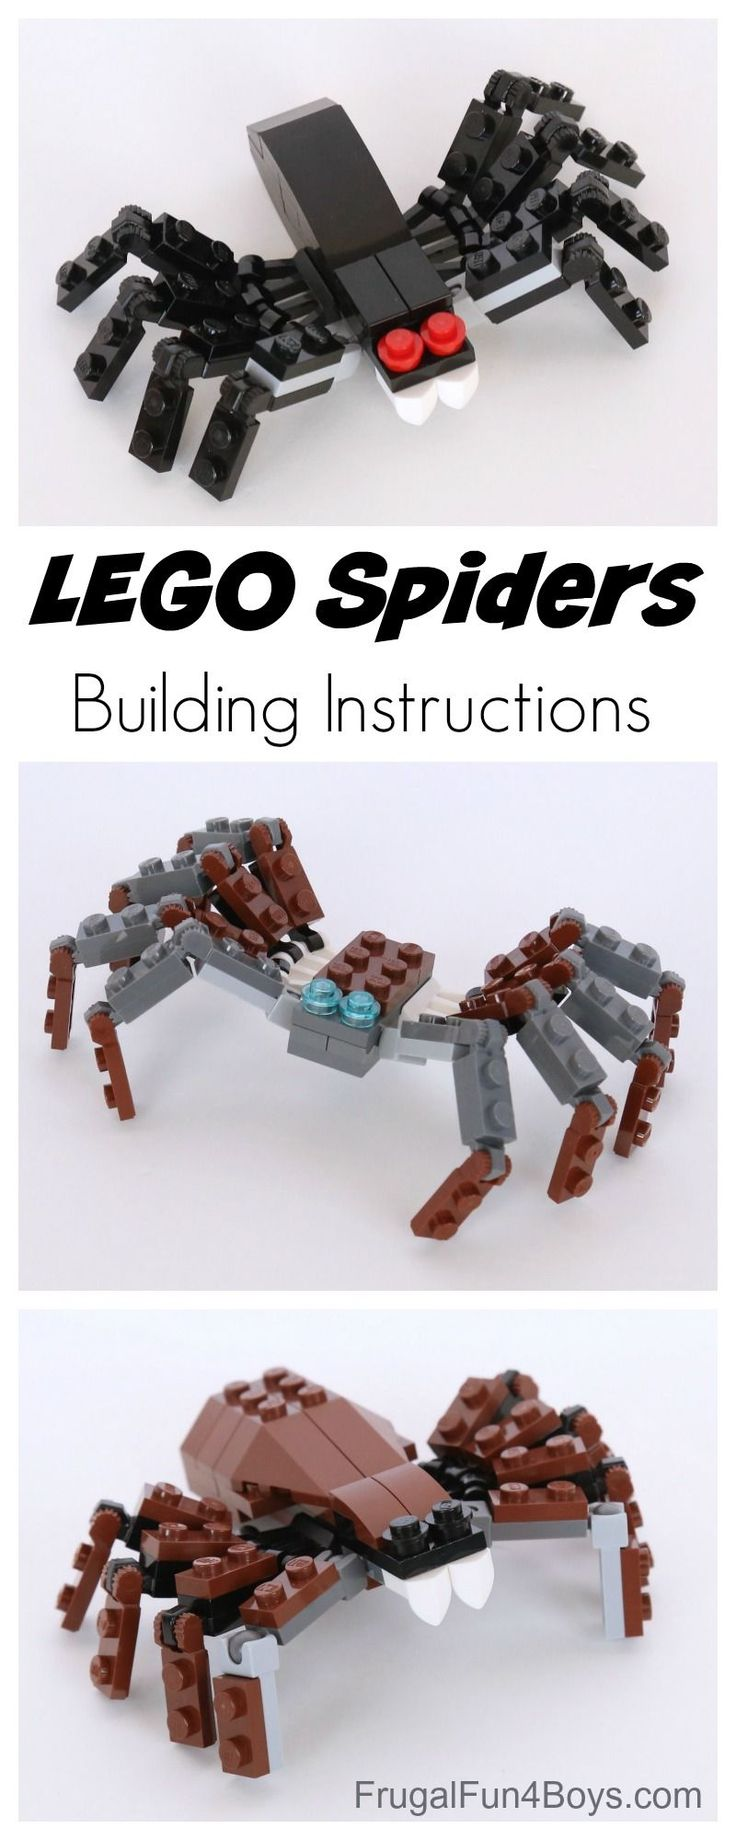 Here are some building instructions for making creepy and crawly LEGO spiders!  While spiders are far from my favorite creatures, the boys love them.  These spiders were created by Aidan (age 13) and Owen (age 7) with a few adjustments by me. In the instructions, I have used brick names as used on Brick Link...Read More »